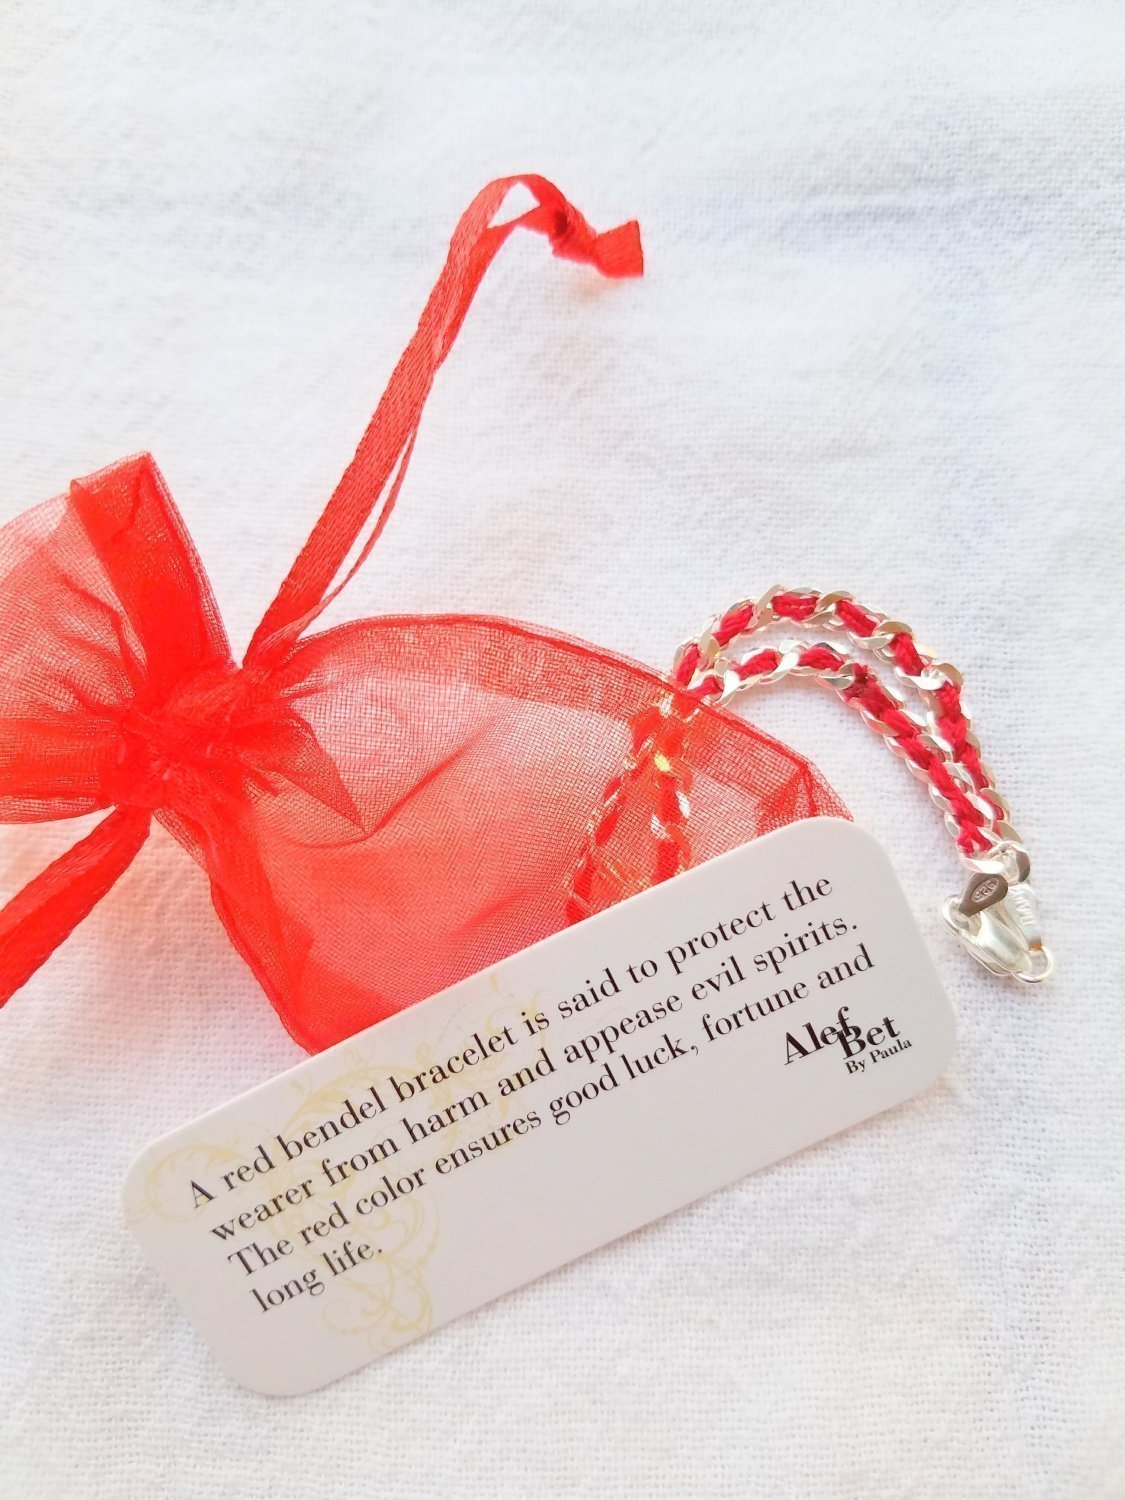 0b89a67c115c7 Amazon.com: Peace Sign Red String Bendel Kabbalah Style Protective ...